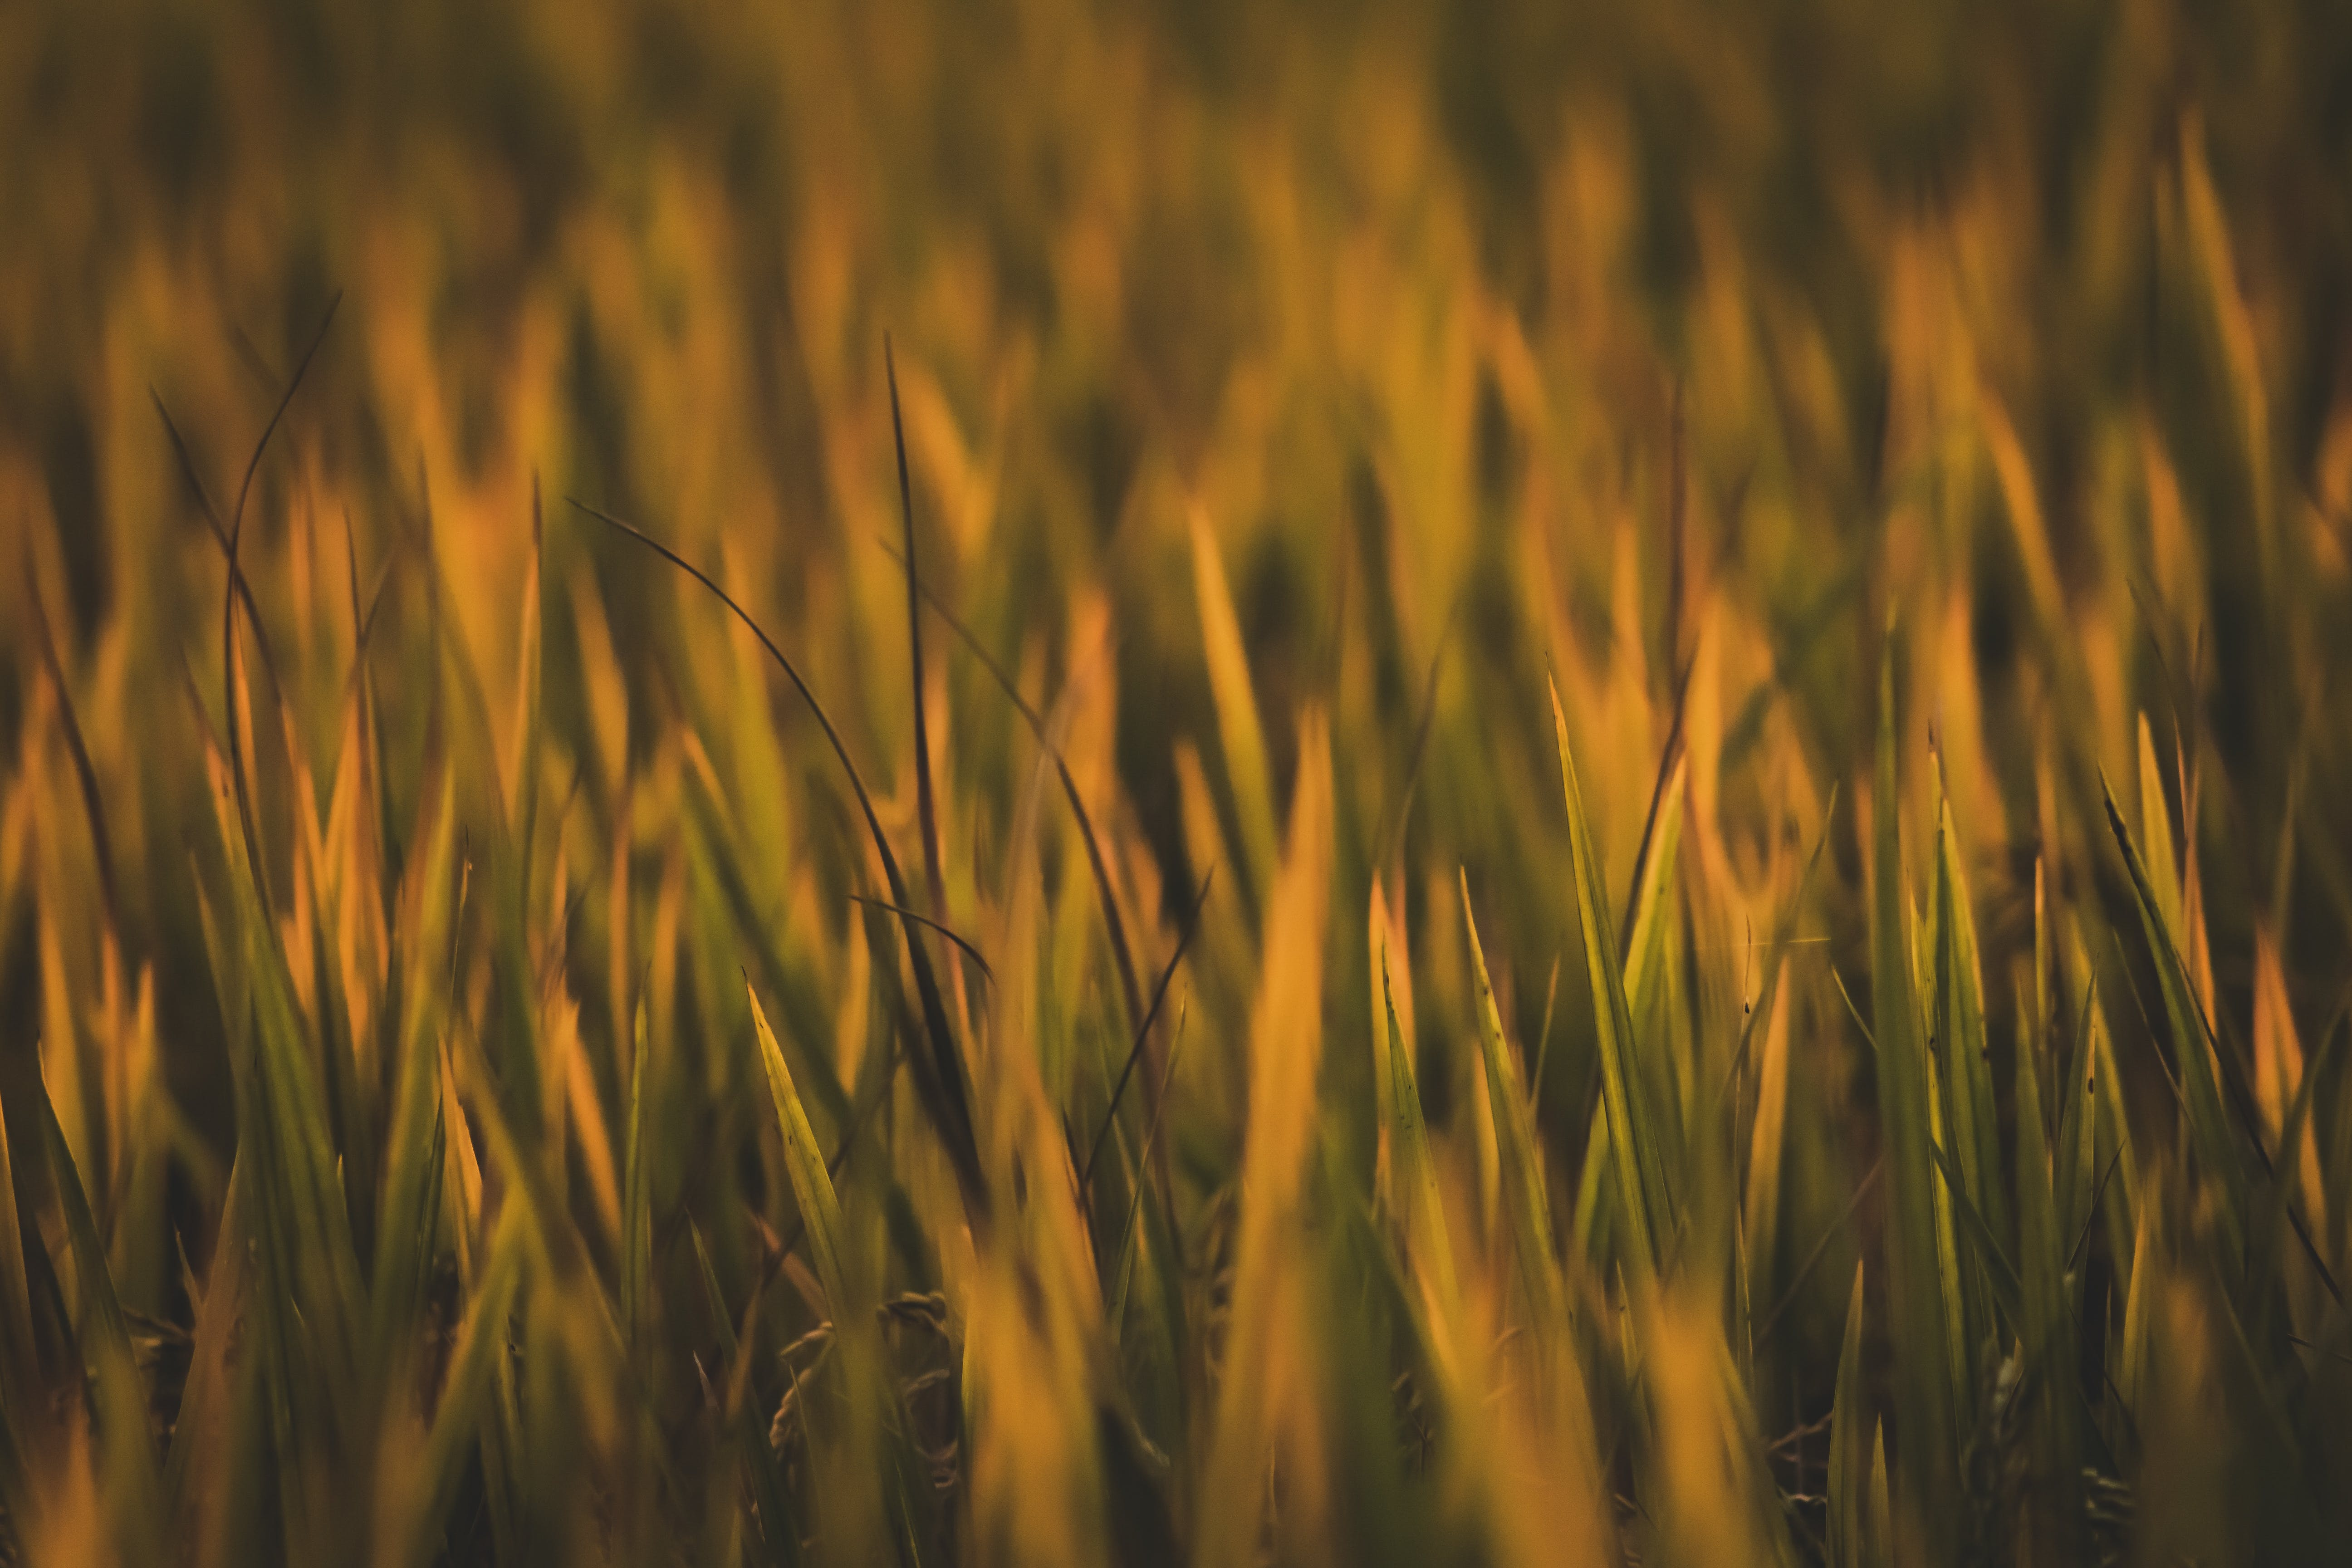 Close-Up Photo of Grass